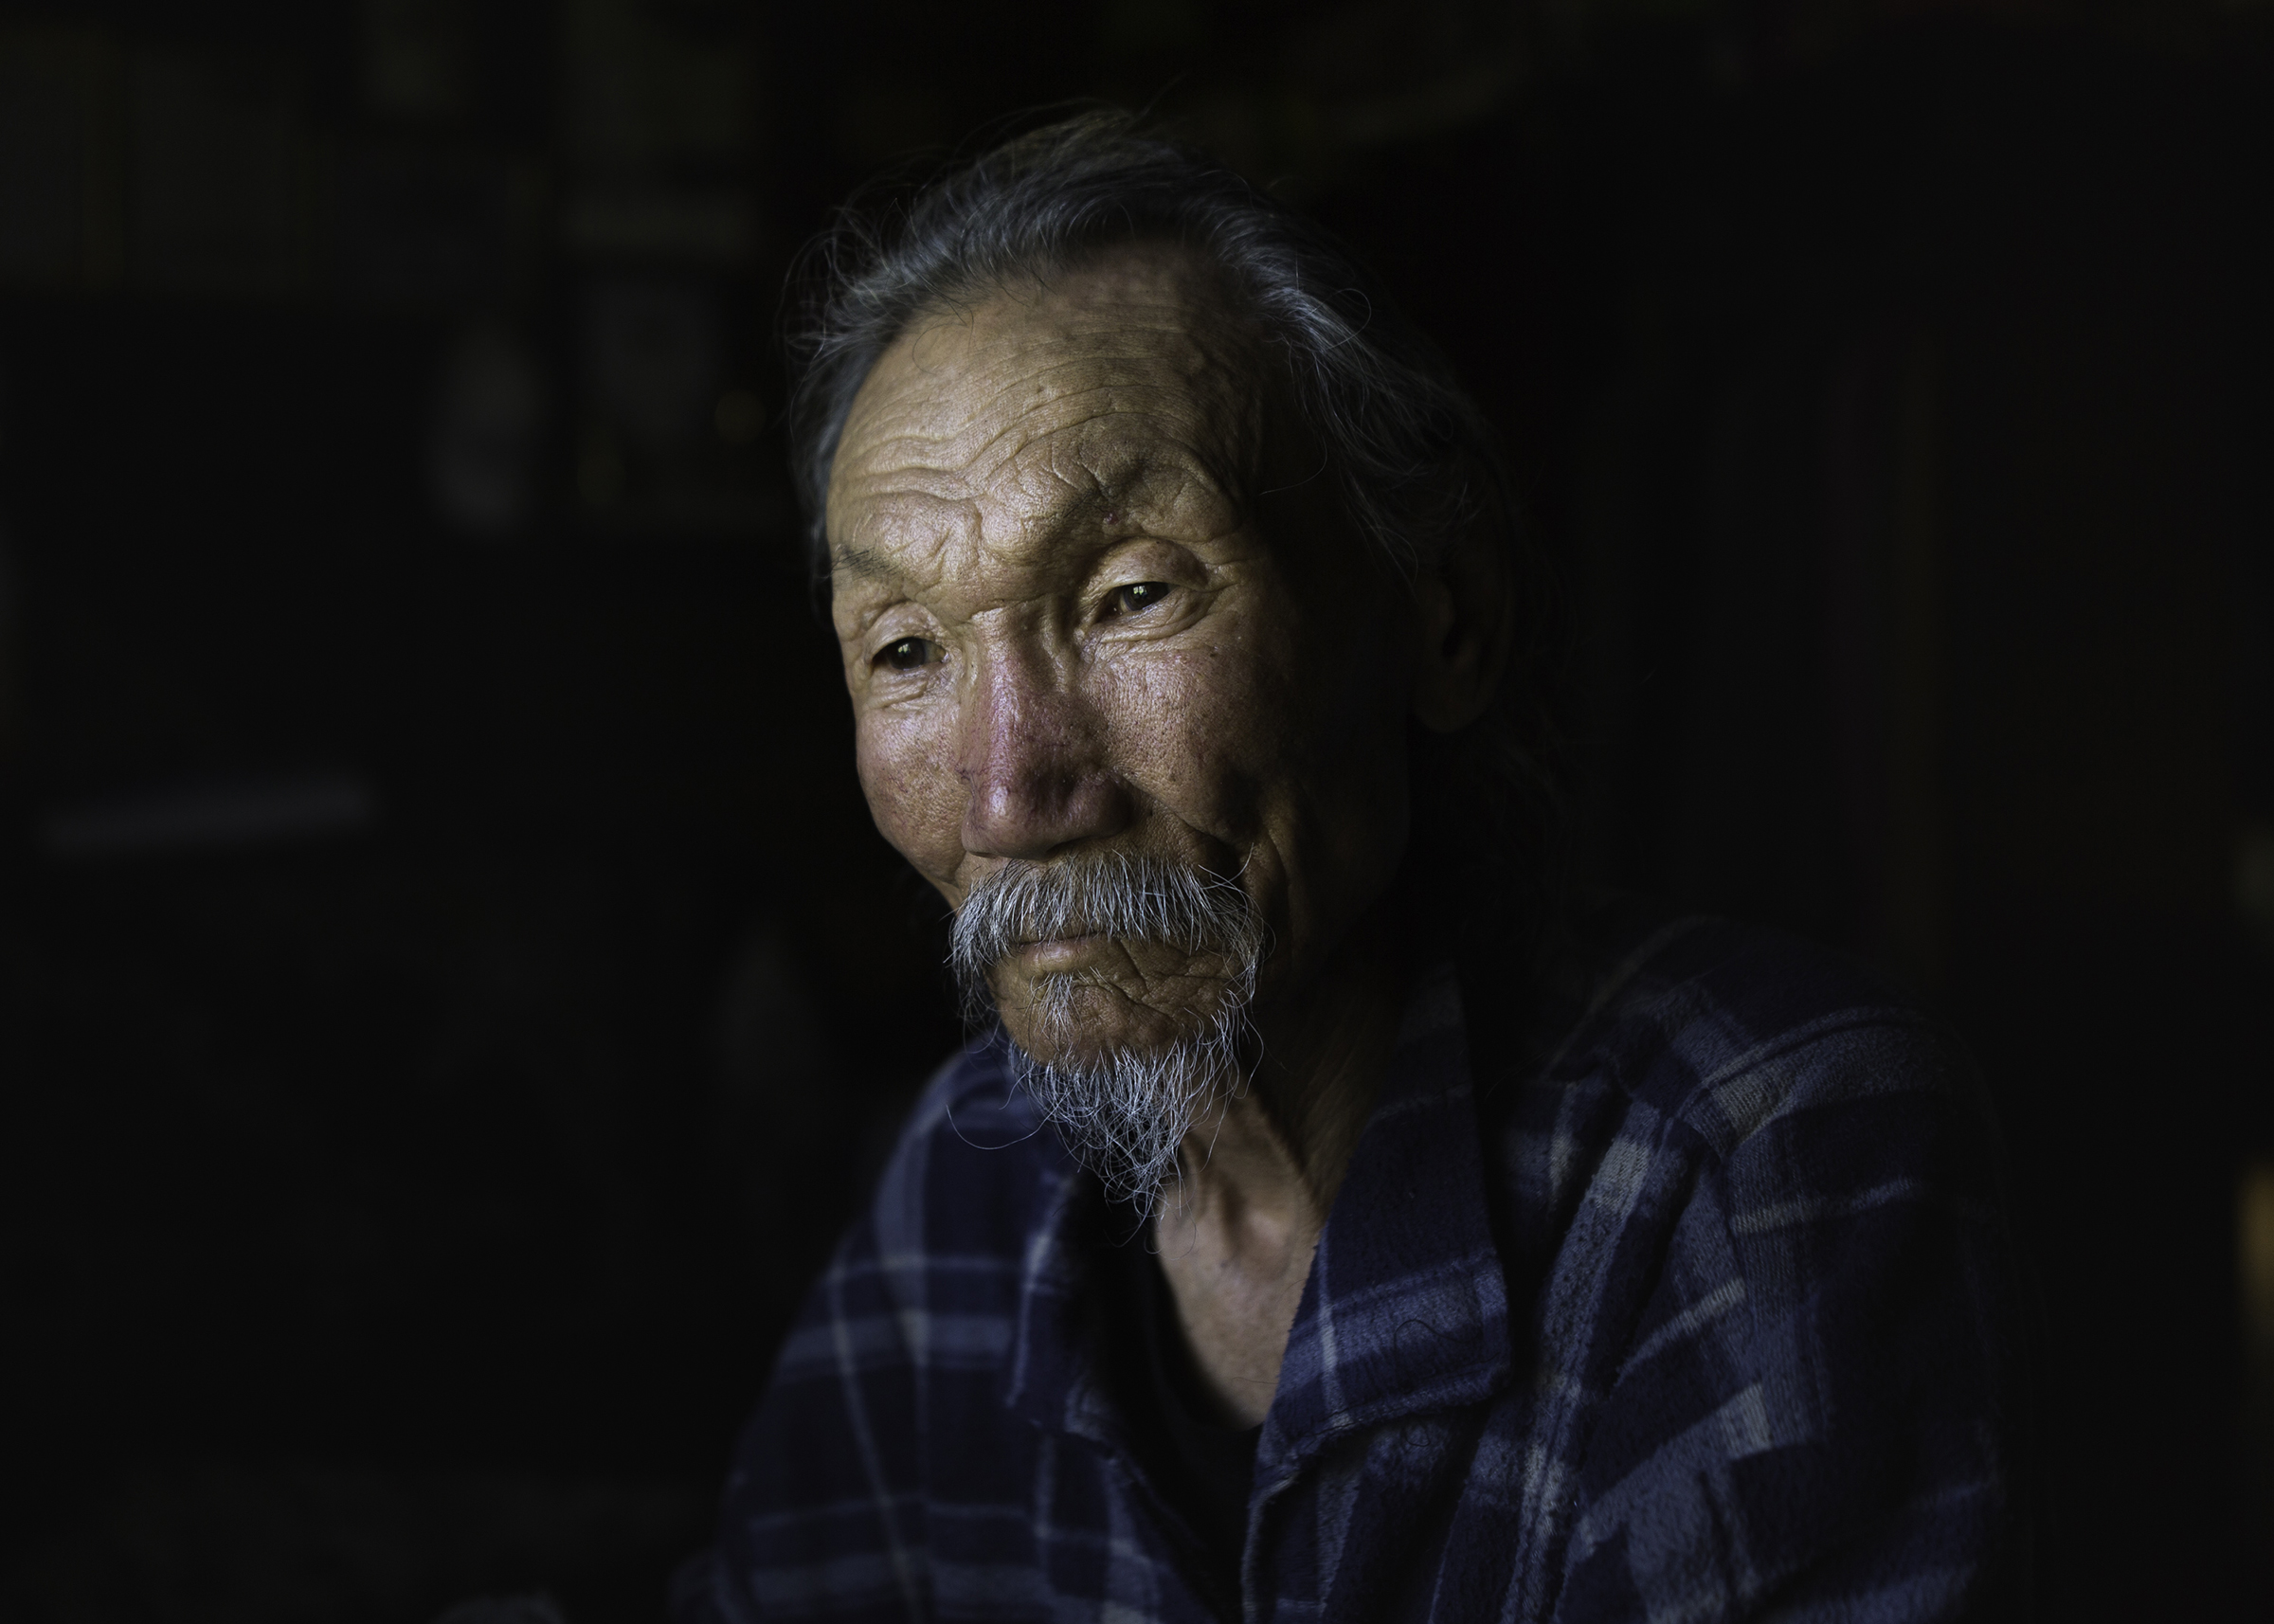 Stepan Petrov, 74, became a celebrity not only in Yakutia but also in Russia after starring in 'The Lord Eagle' in 2018. He still plays in the folk theatre of his small village Kerdem, where he lives with his wife.